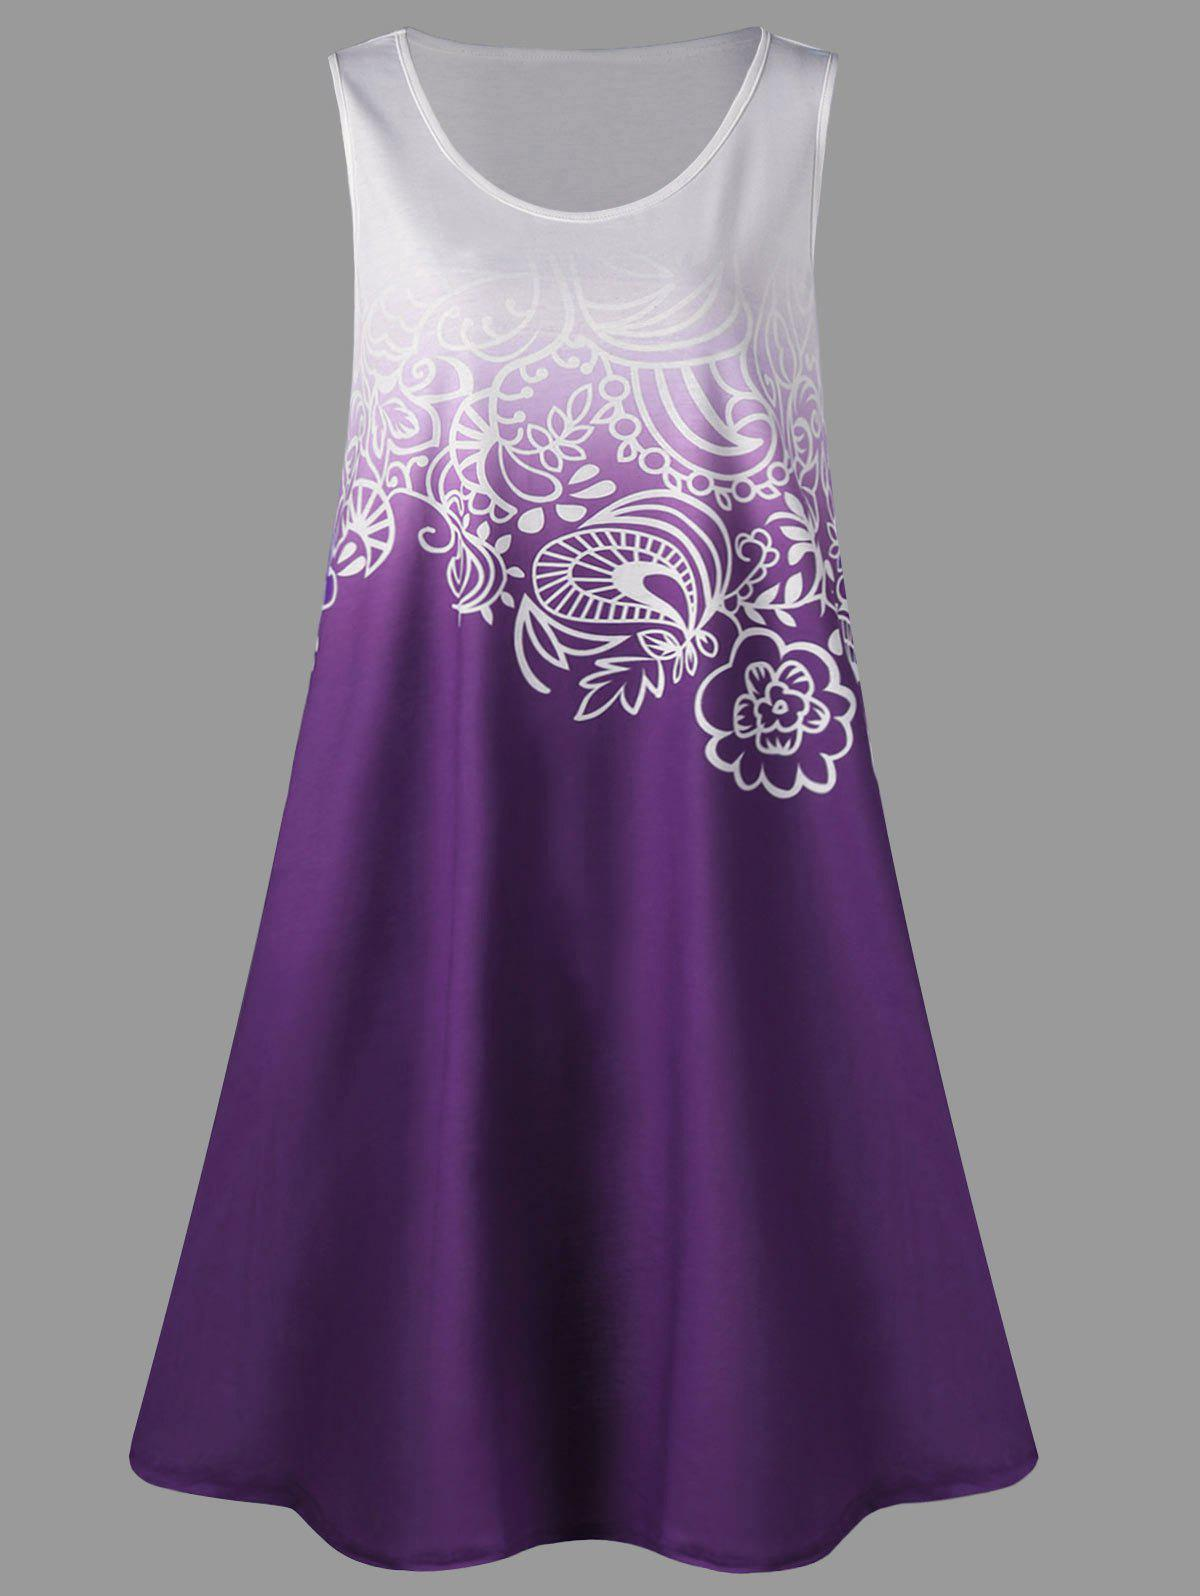 A Line Tunic Plus Size Gradient Color Tank DressWOMEN<br><br>Size: 5XL; Color: PURPLE; Style: Casual; Material: Polyester,Spandex; Silhouette: A-Line; Dresses Length: Knee-Length; Neckline: Scoop Neck; Sleeve Length: Sleeveless; Pattern Type: Others; With Belt: No; Season: Summer; Weight: 0.3000kg; Package Contents: 1 x Dress;